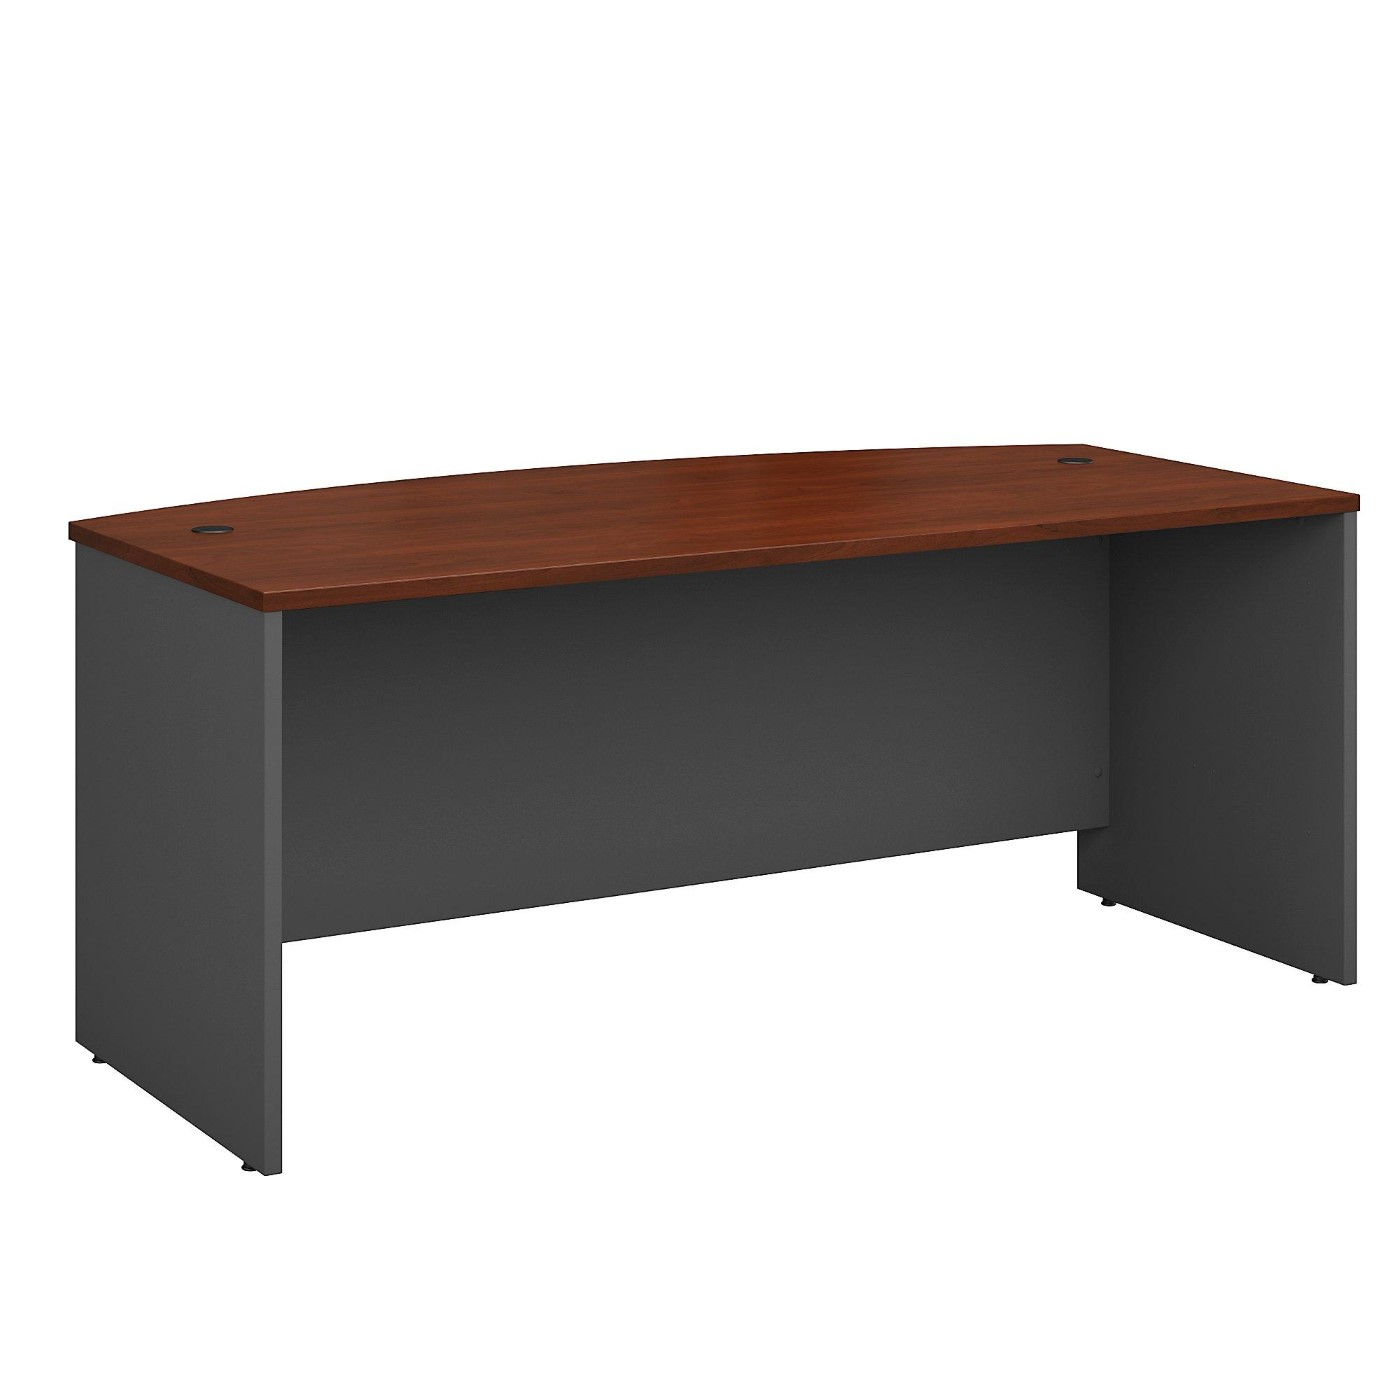 BUSH BUSINESS FURNITURE SERIES C 72W X 36D BOW FRONT DESK. FREE SHIPPING</font></b></font></b>&#x1F384<font color=red><b>ERGONOMICHOME HOLIDAY SALE - ENDS DEC. 17, 2019</b></font>&#x1F384